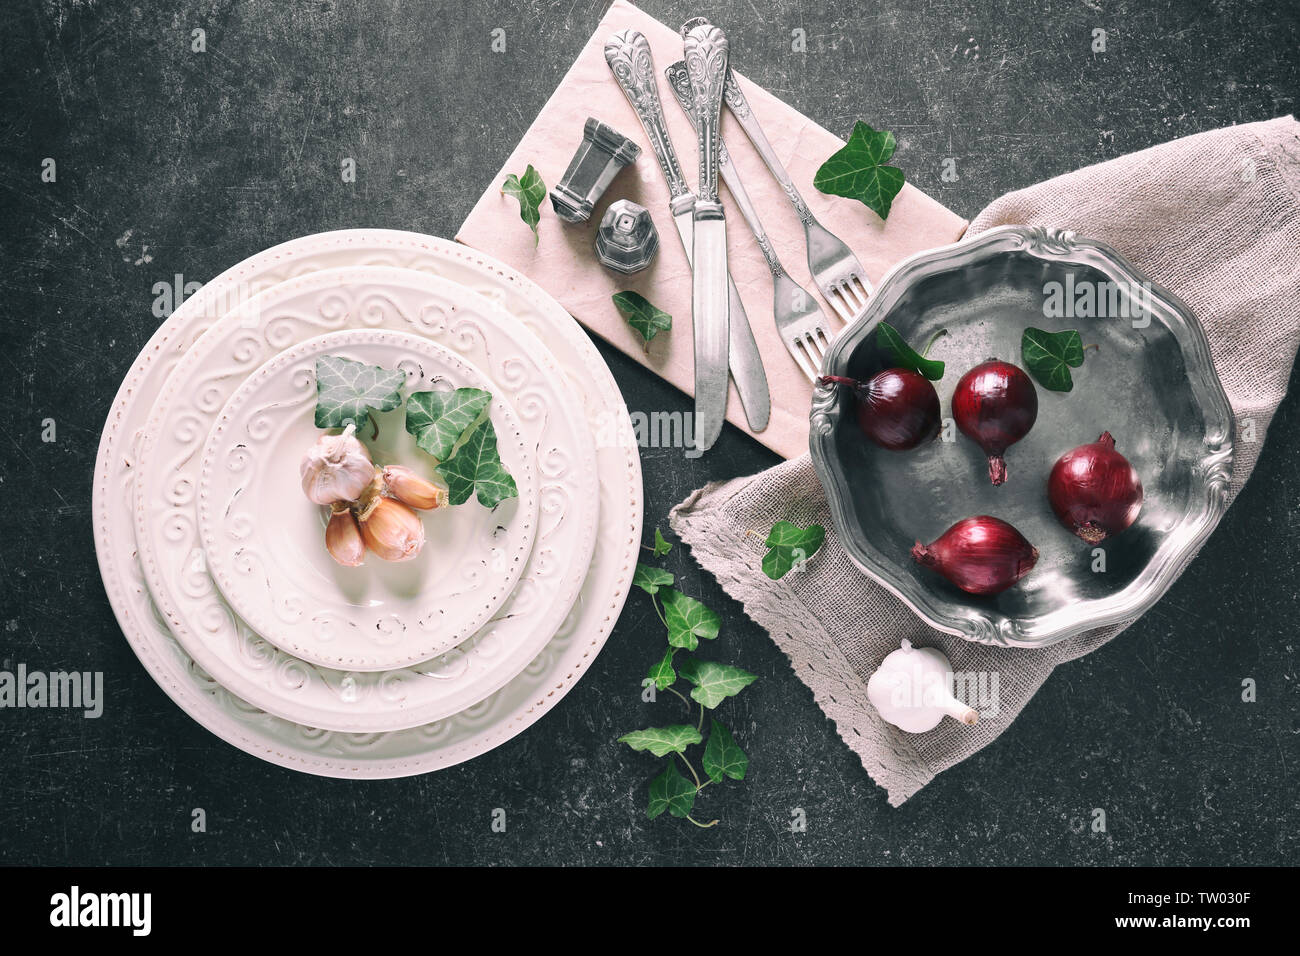 Cutlery set with plates and vegetables on gray background - Stock Image